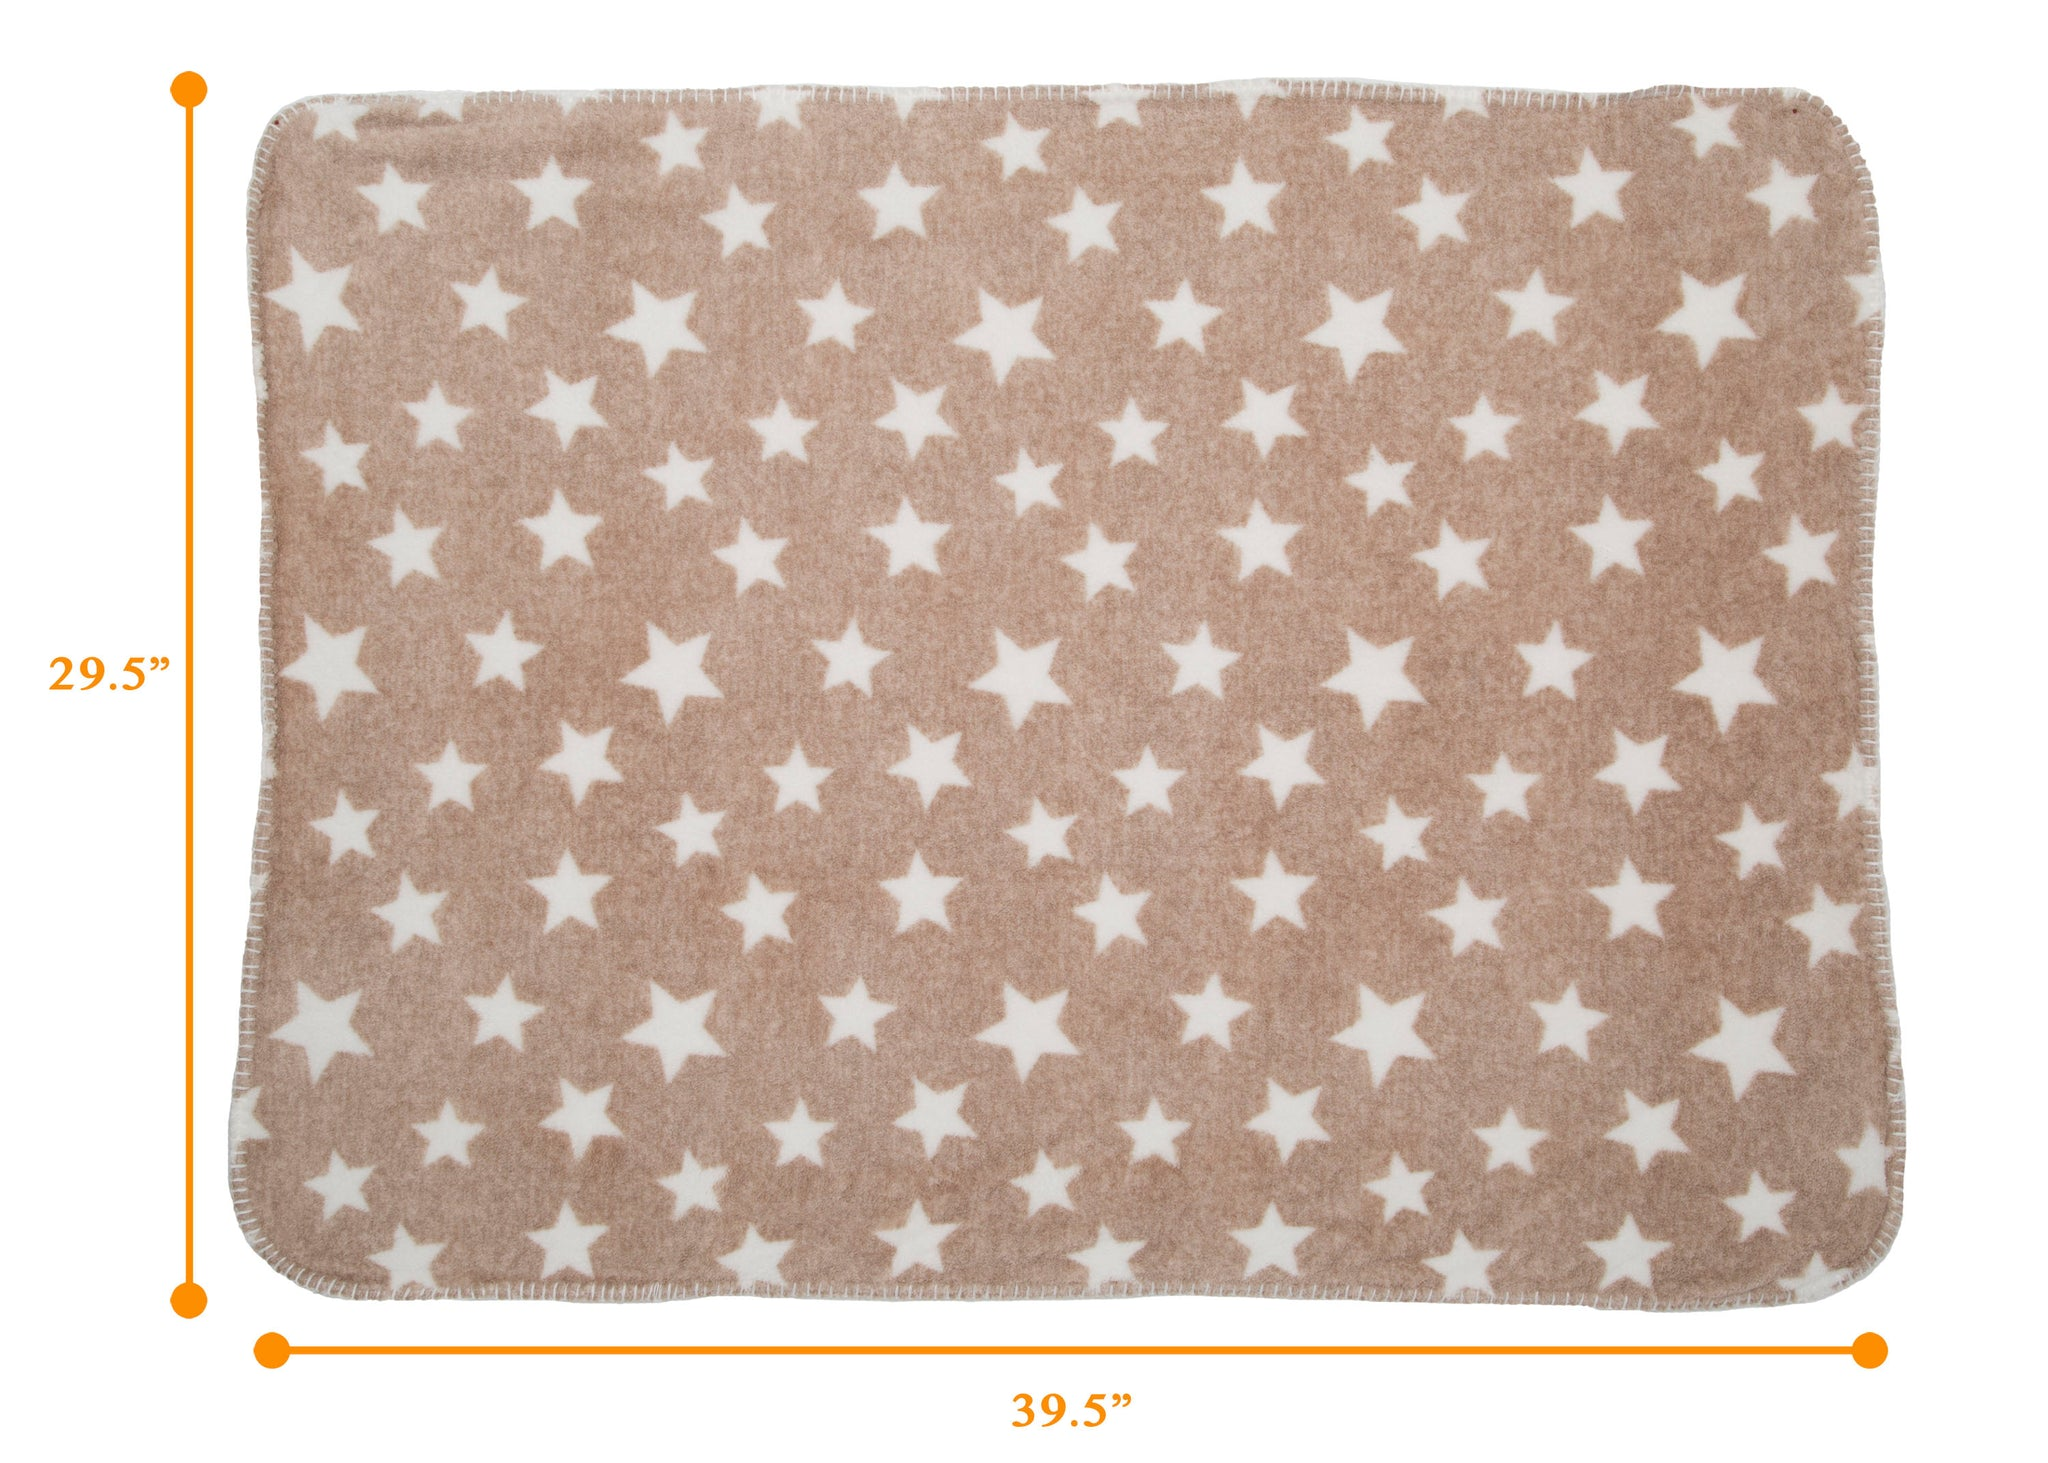 Delta Children Soft Fleece Baby Blanket for Strollers Beige Stars (4007) Measured View b4b